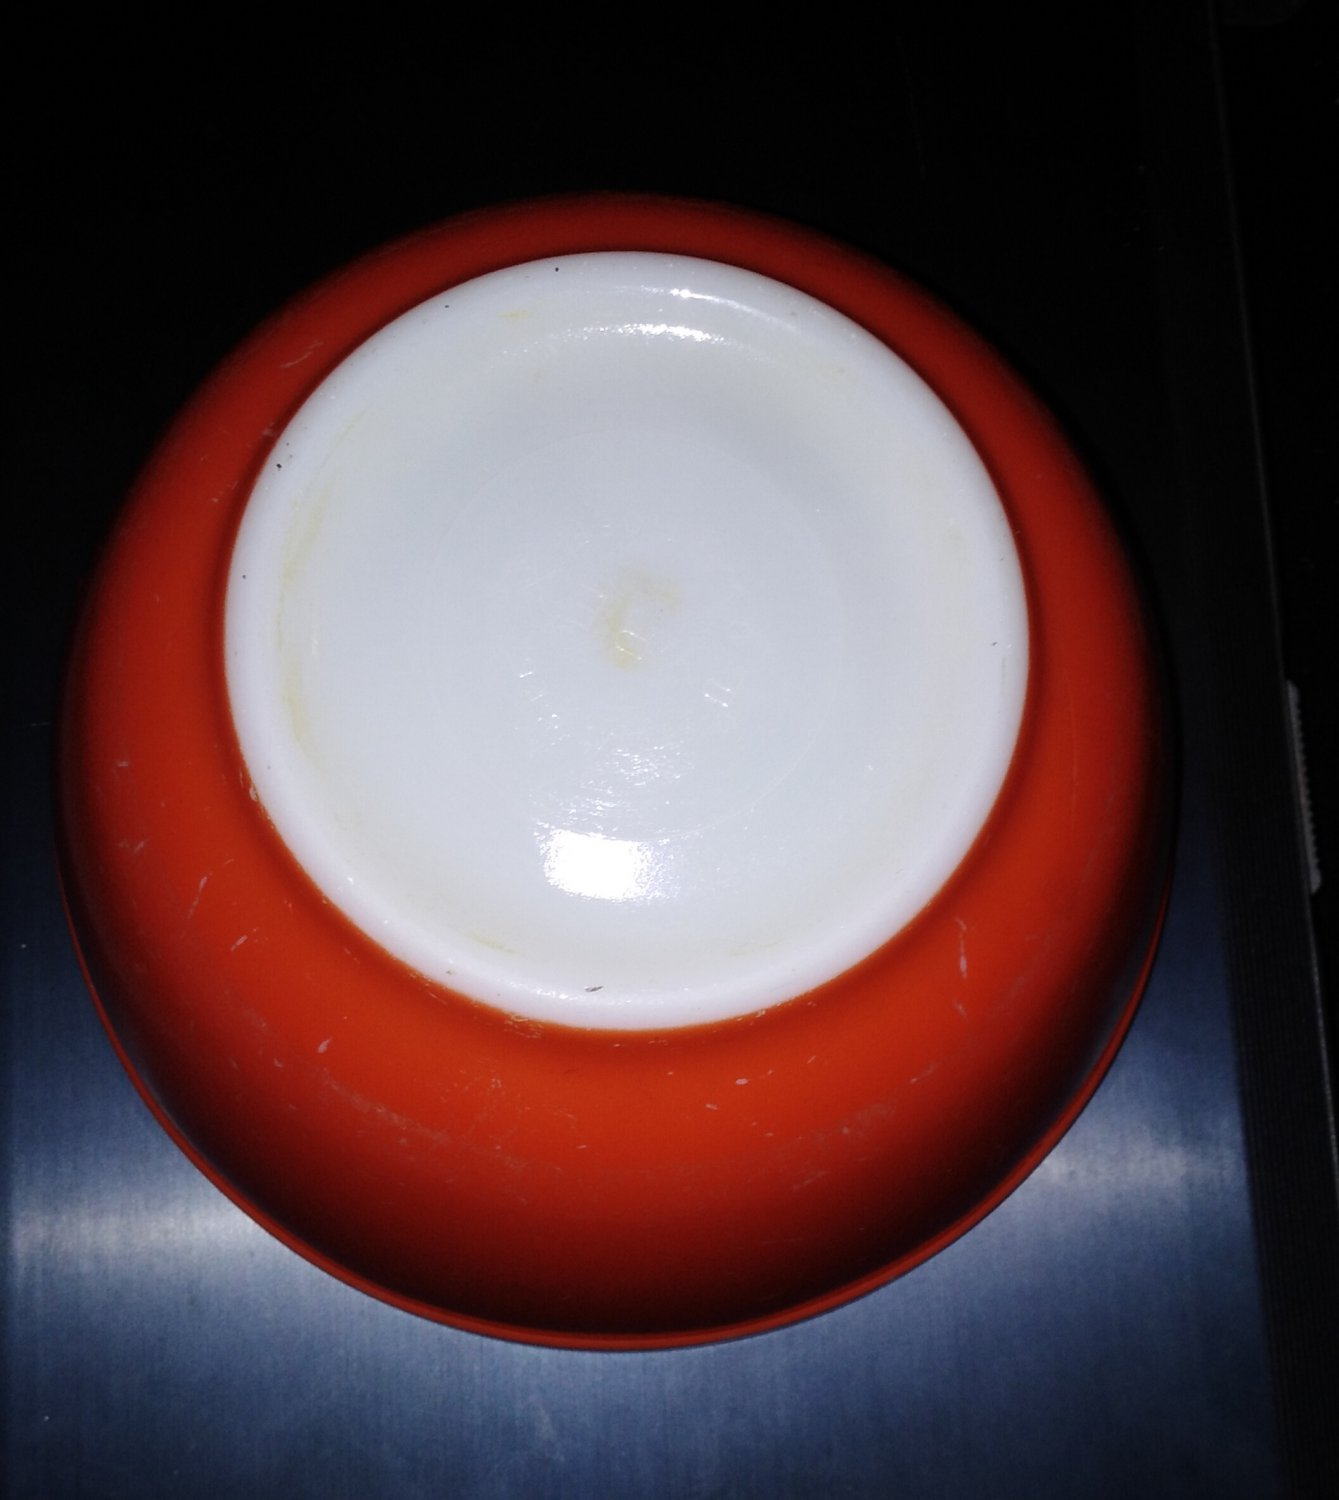 Vintage Pyrex 1950�s red mixing nesting bowl 402 TM REG US PAT OFF 1.5 Quart